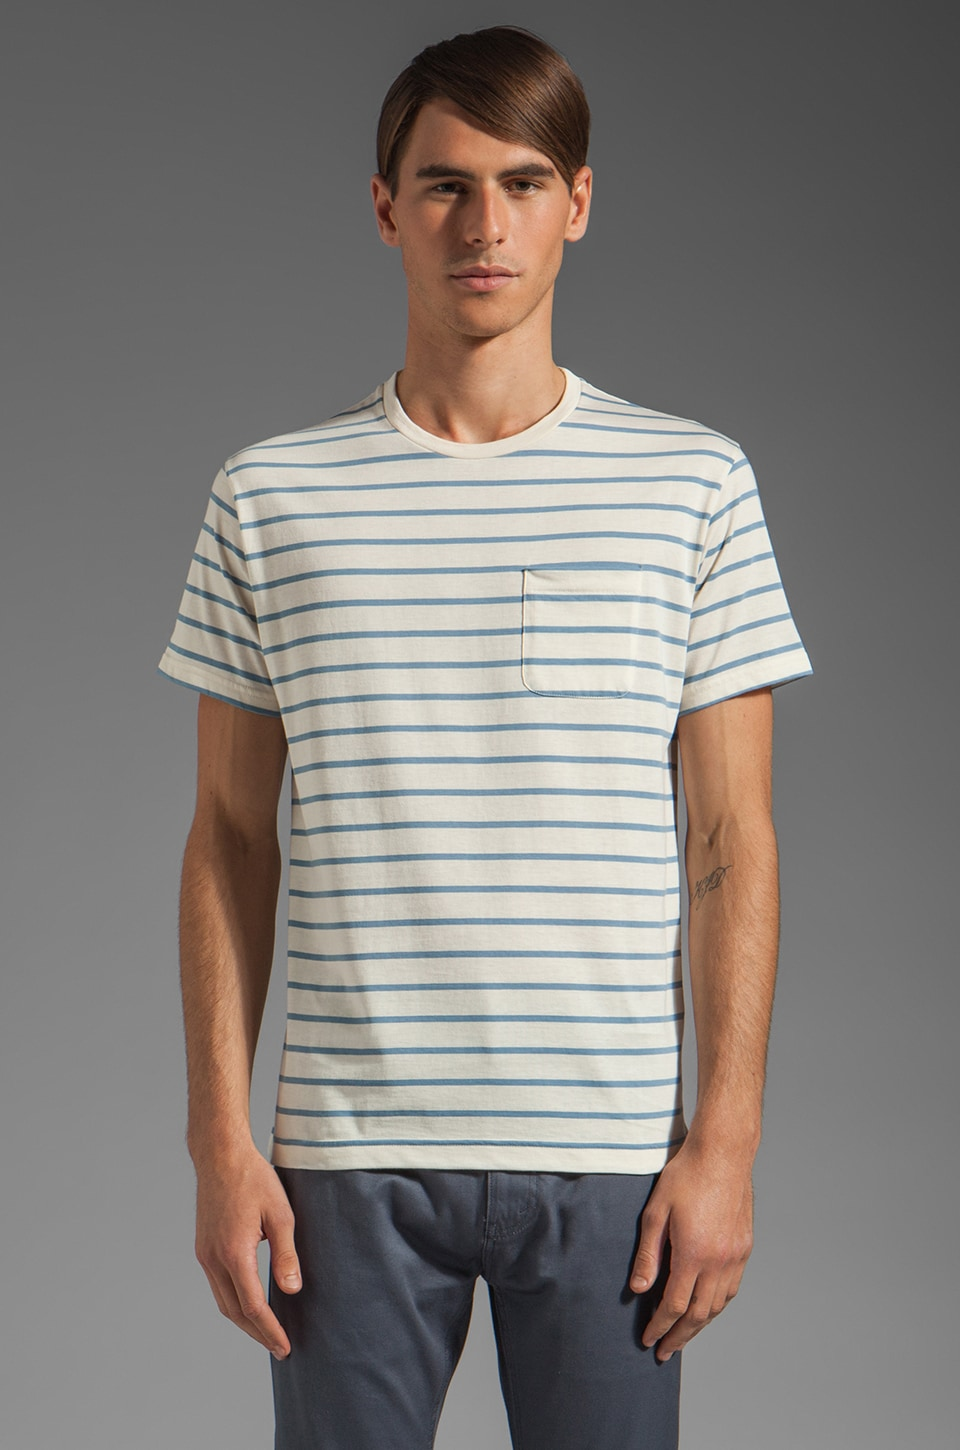 Hentsch Man Pocket Tee in Blue Stripe